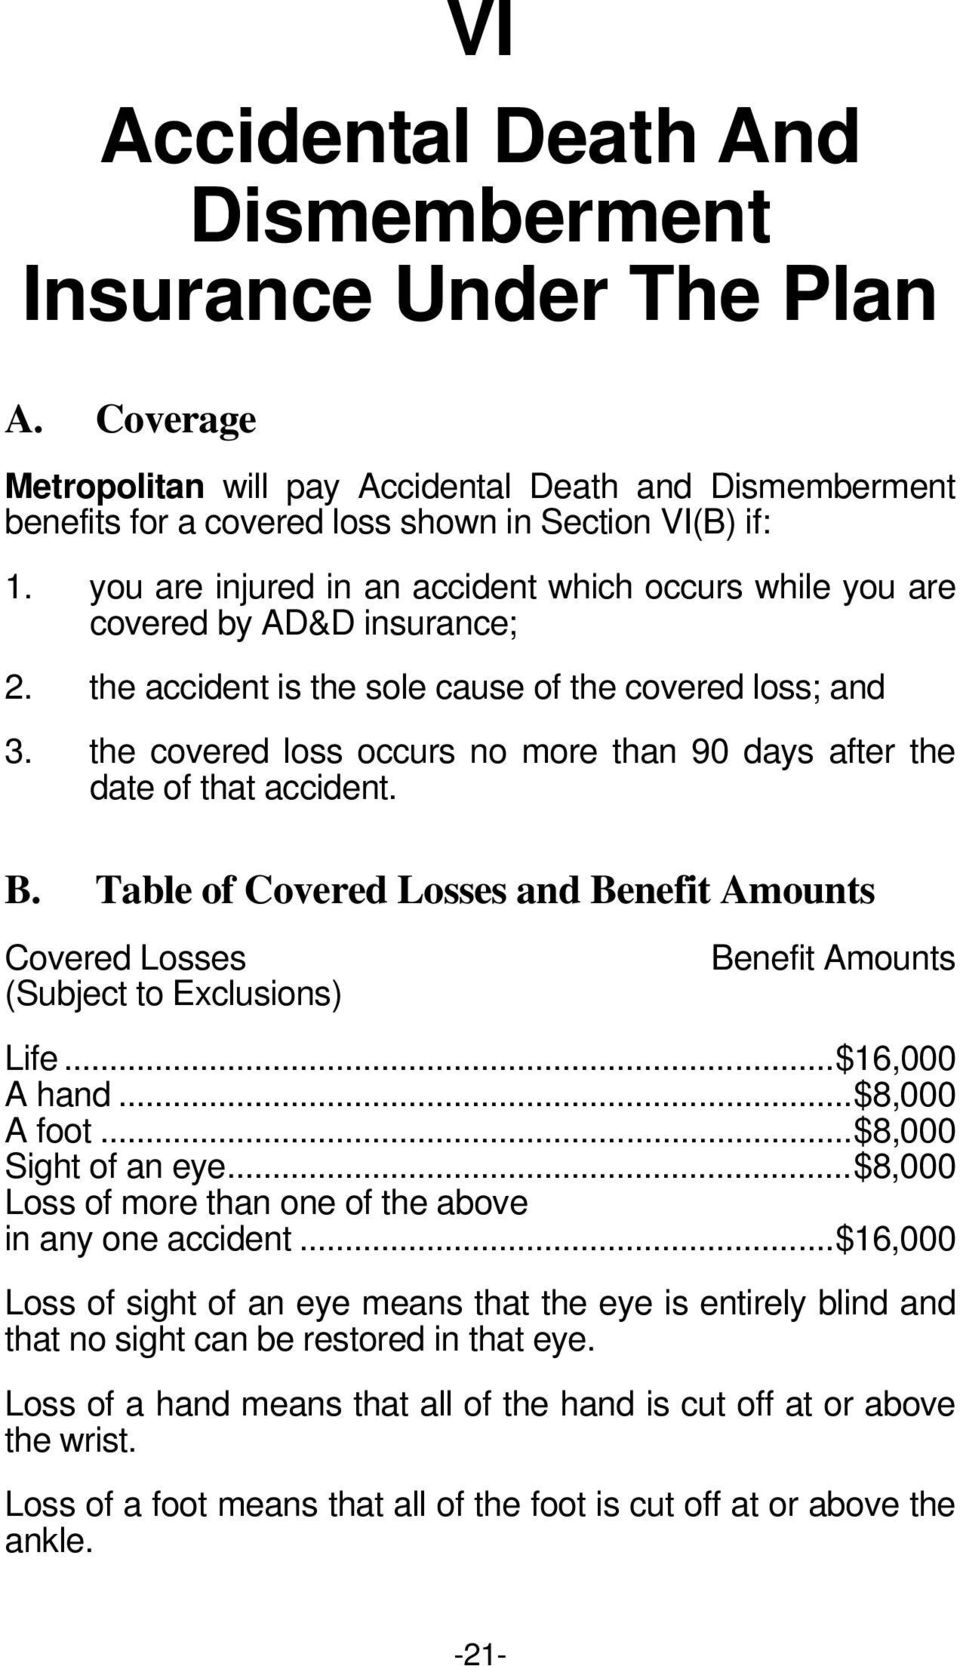 the covered loss occurs no more than 90 days after the date of that accident. B. Table of Covered Losses and Benefit Amounts Covered Losses (Subject to Exclusions) Benefit Amounts Life...$16,000 A hand.